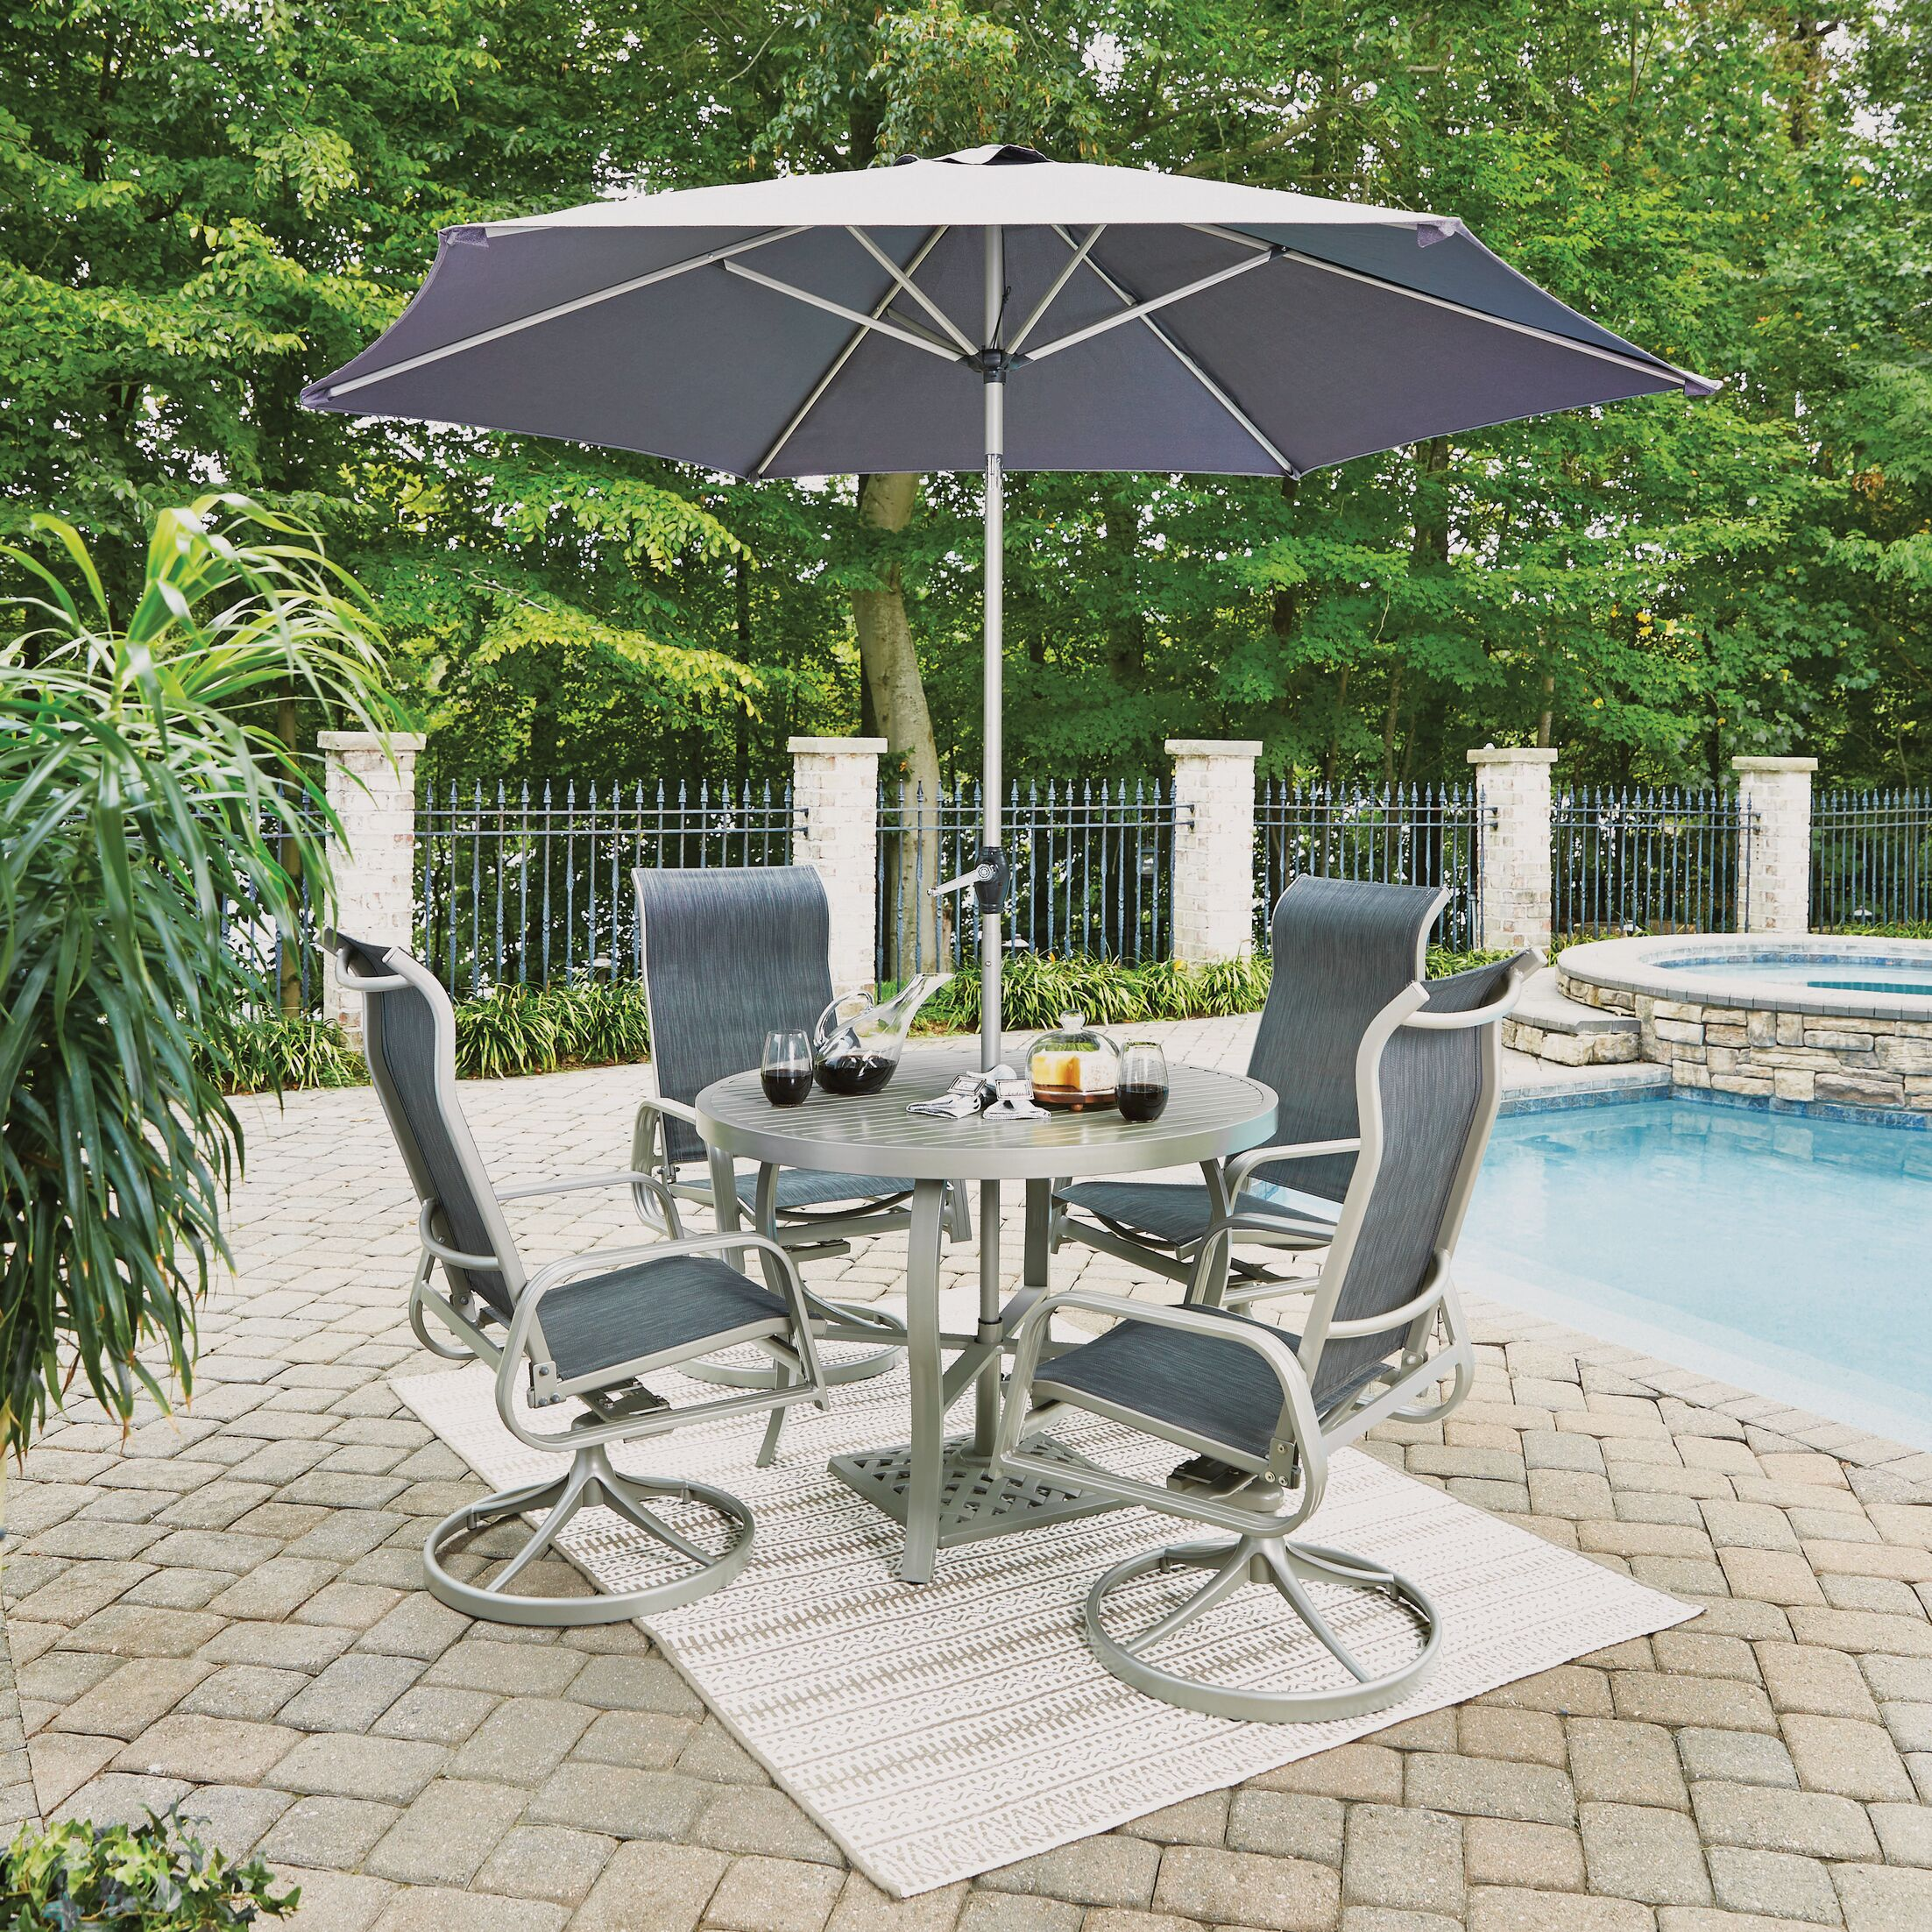 Dinan Outdoor 5 Piece Dining Set with Umbrella Table Size: 28.75